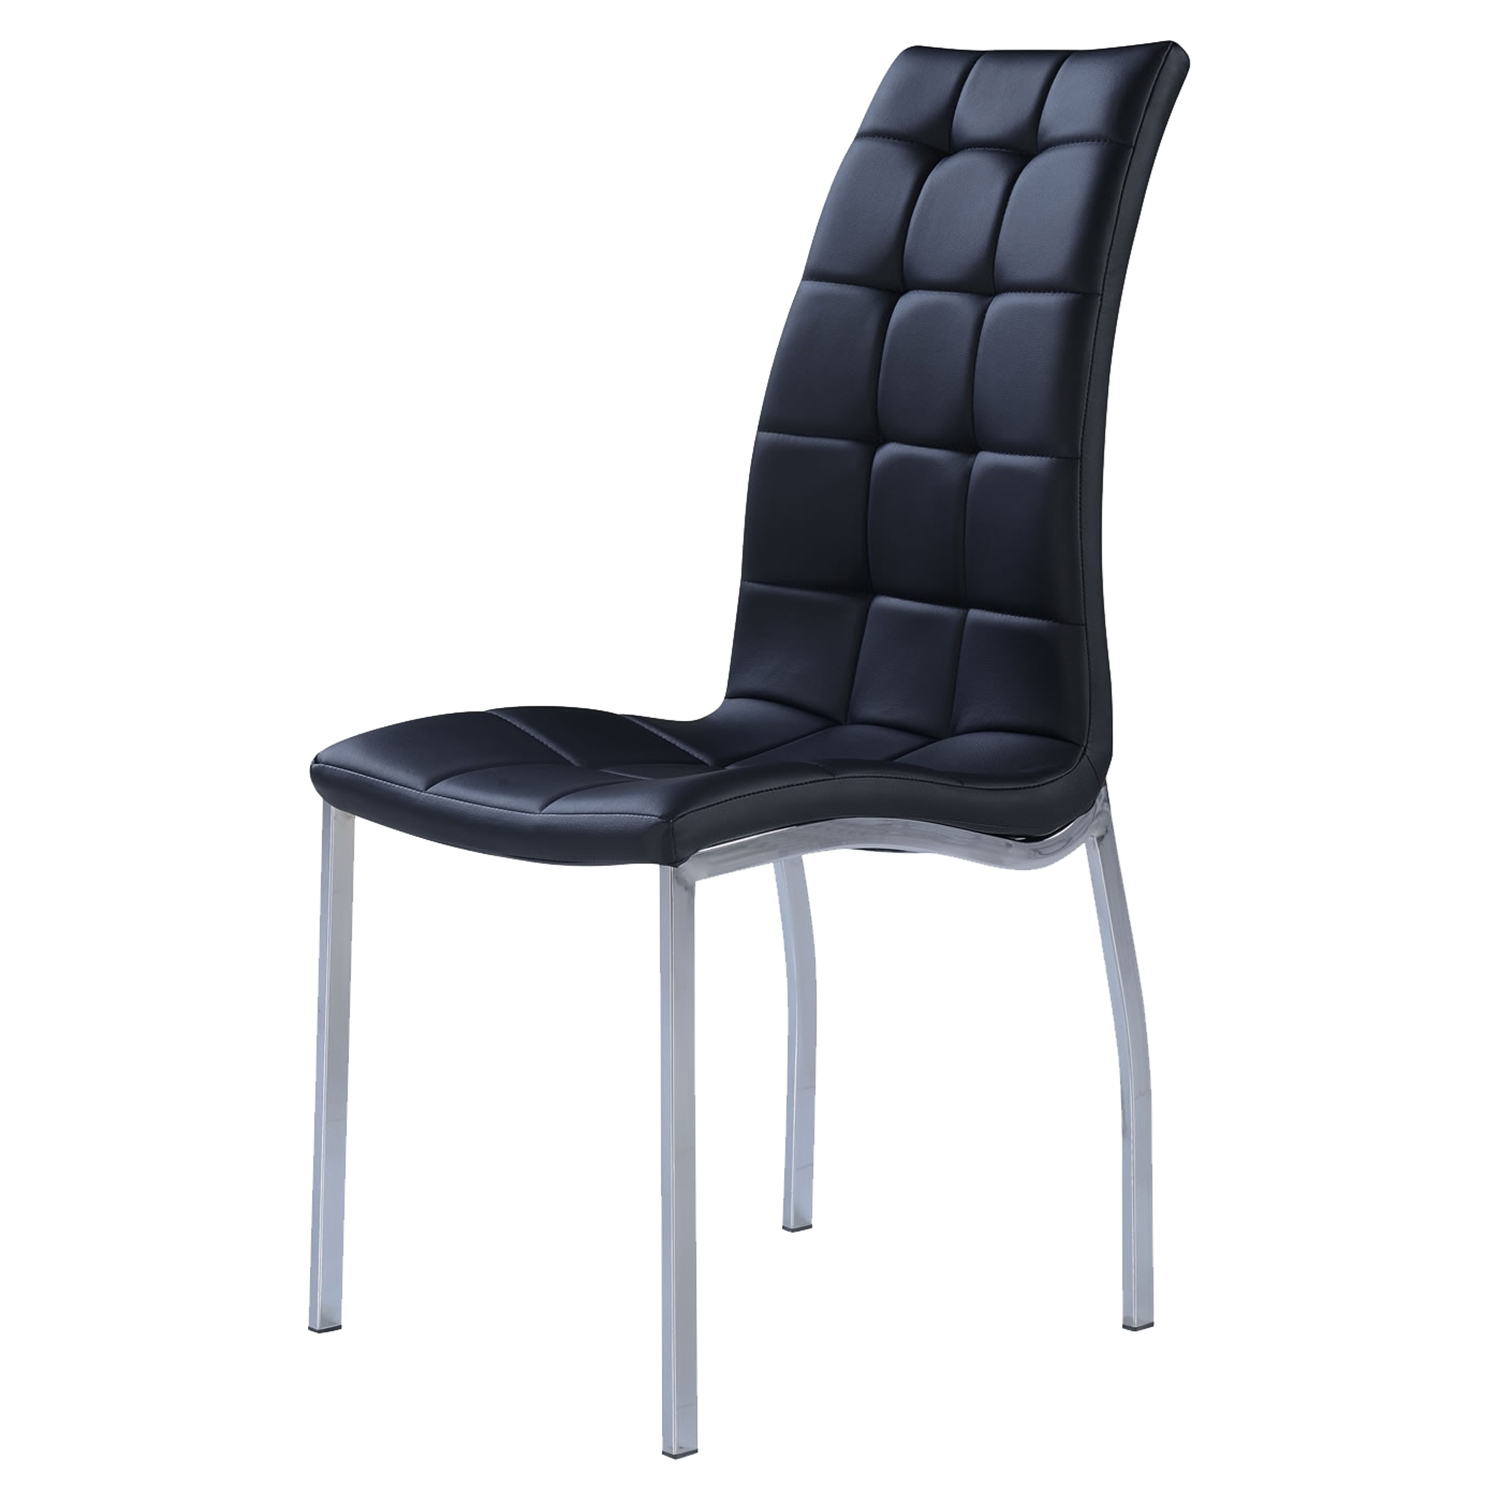 Camila Dining Chair, Black - GLO-D716DC-M